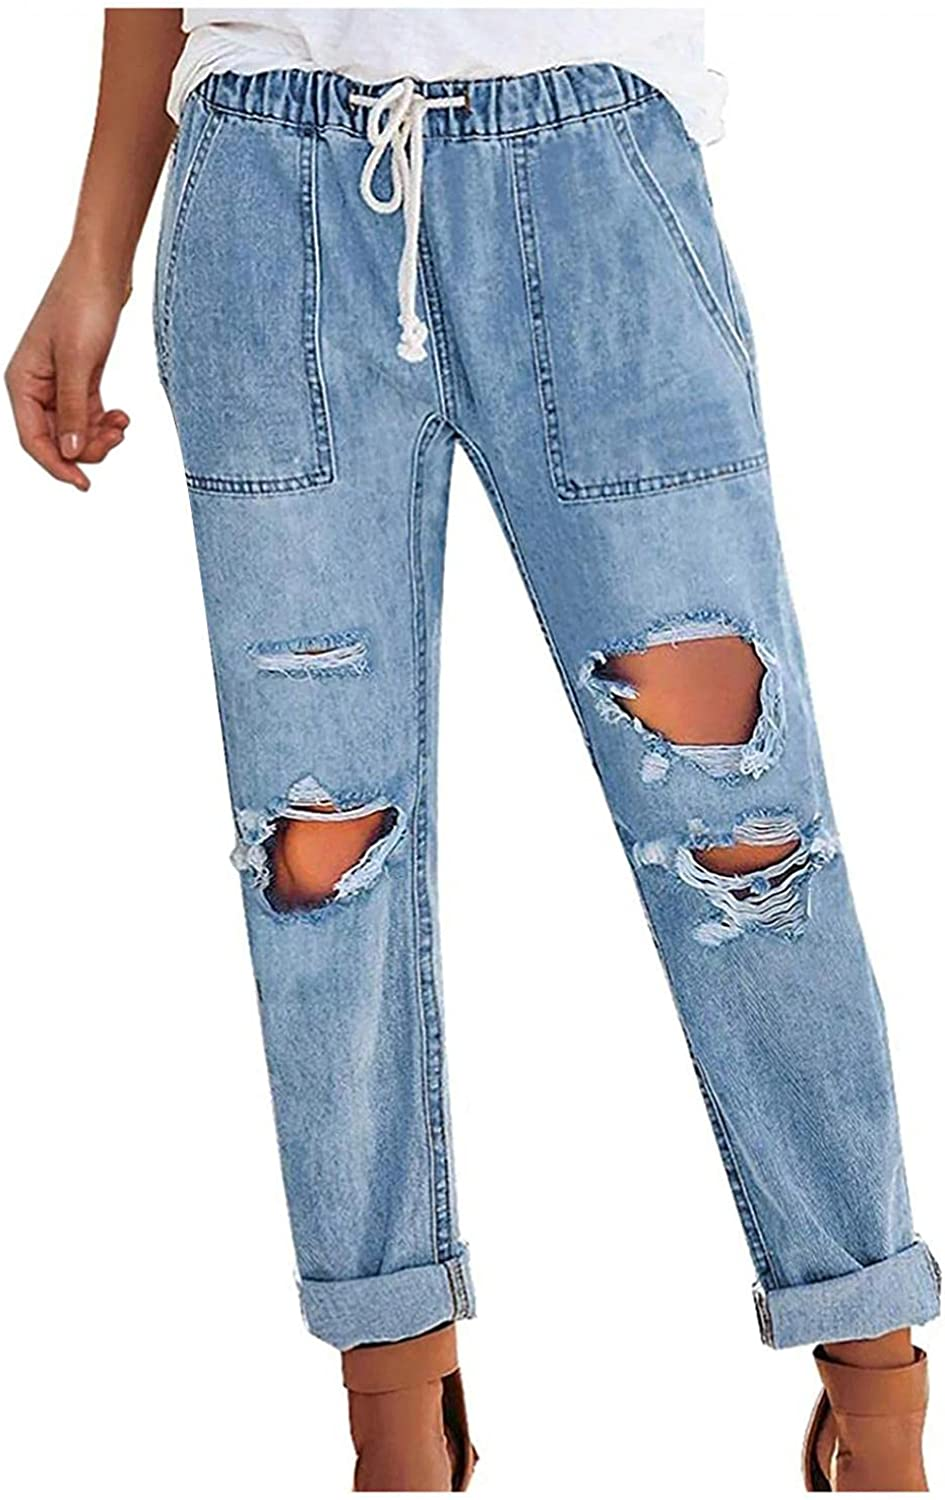 WOSHUAI Women's Denim Trousers Retro 90S Y2K Ripped Boyfriend Jeans Cute Distressed Jeans Stretch Skinny Jeans with Hole